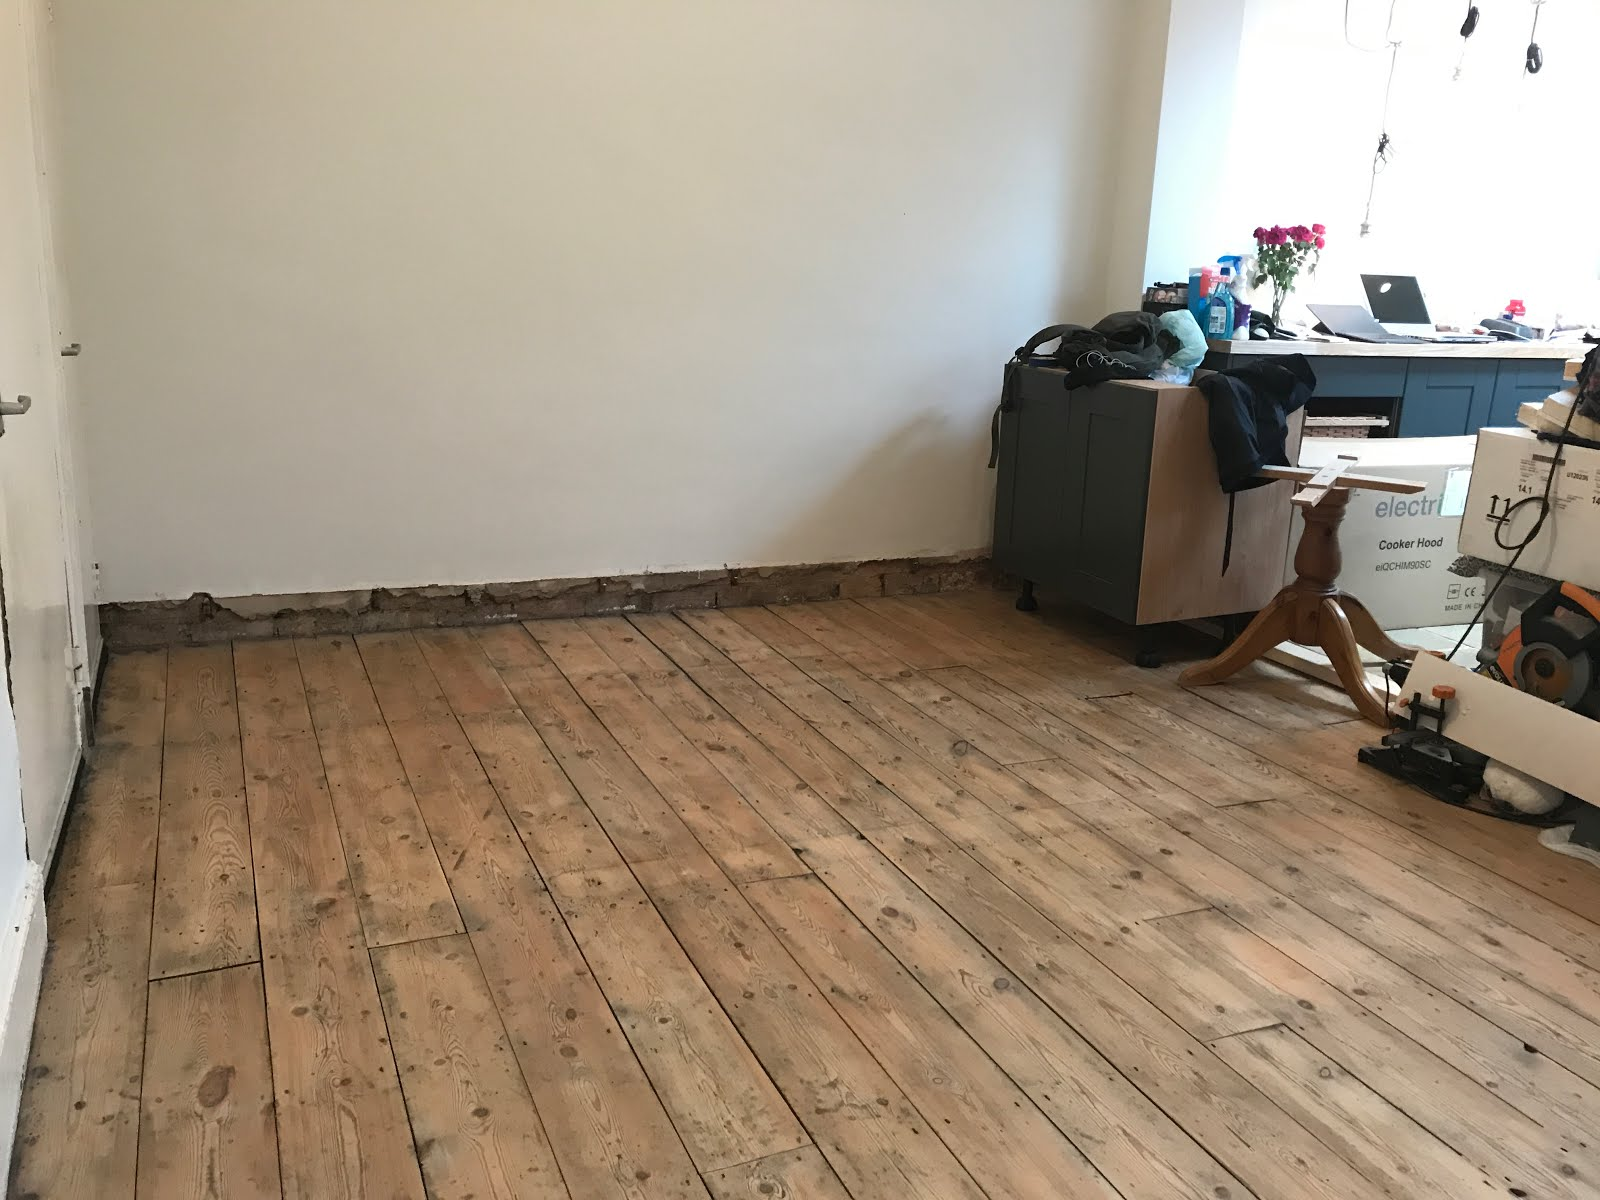 sanding back victorian floorboards